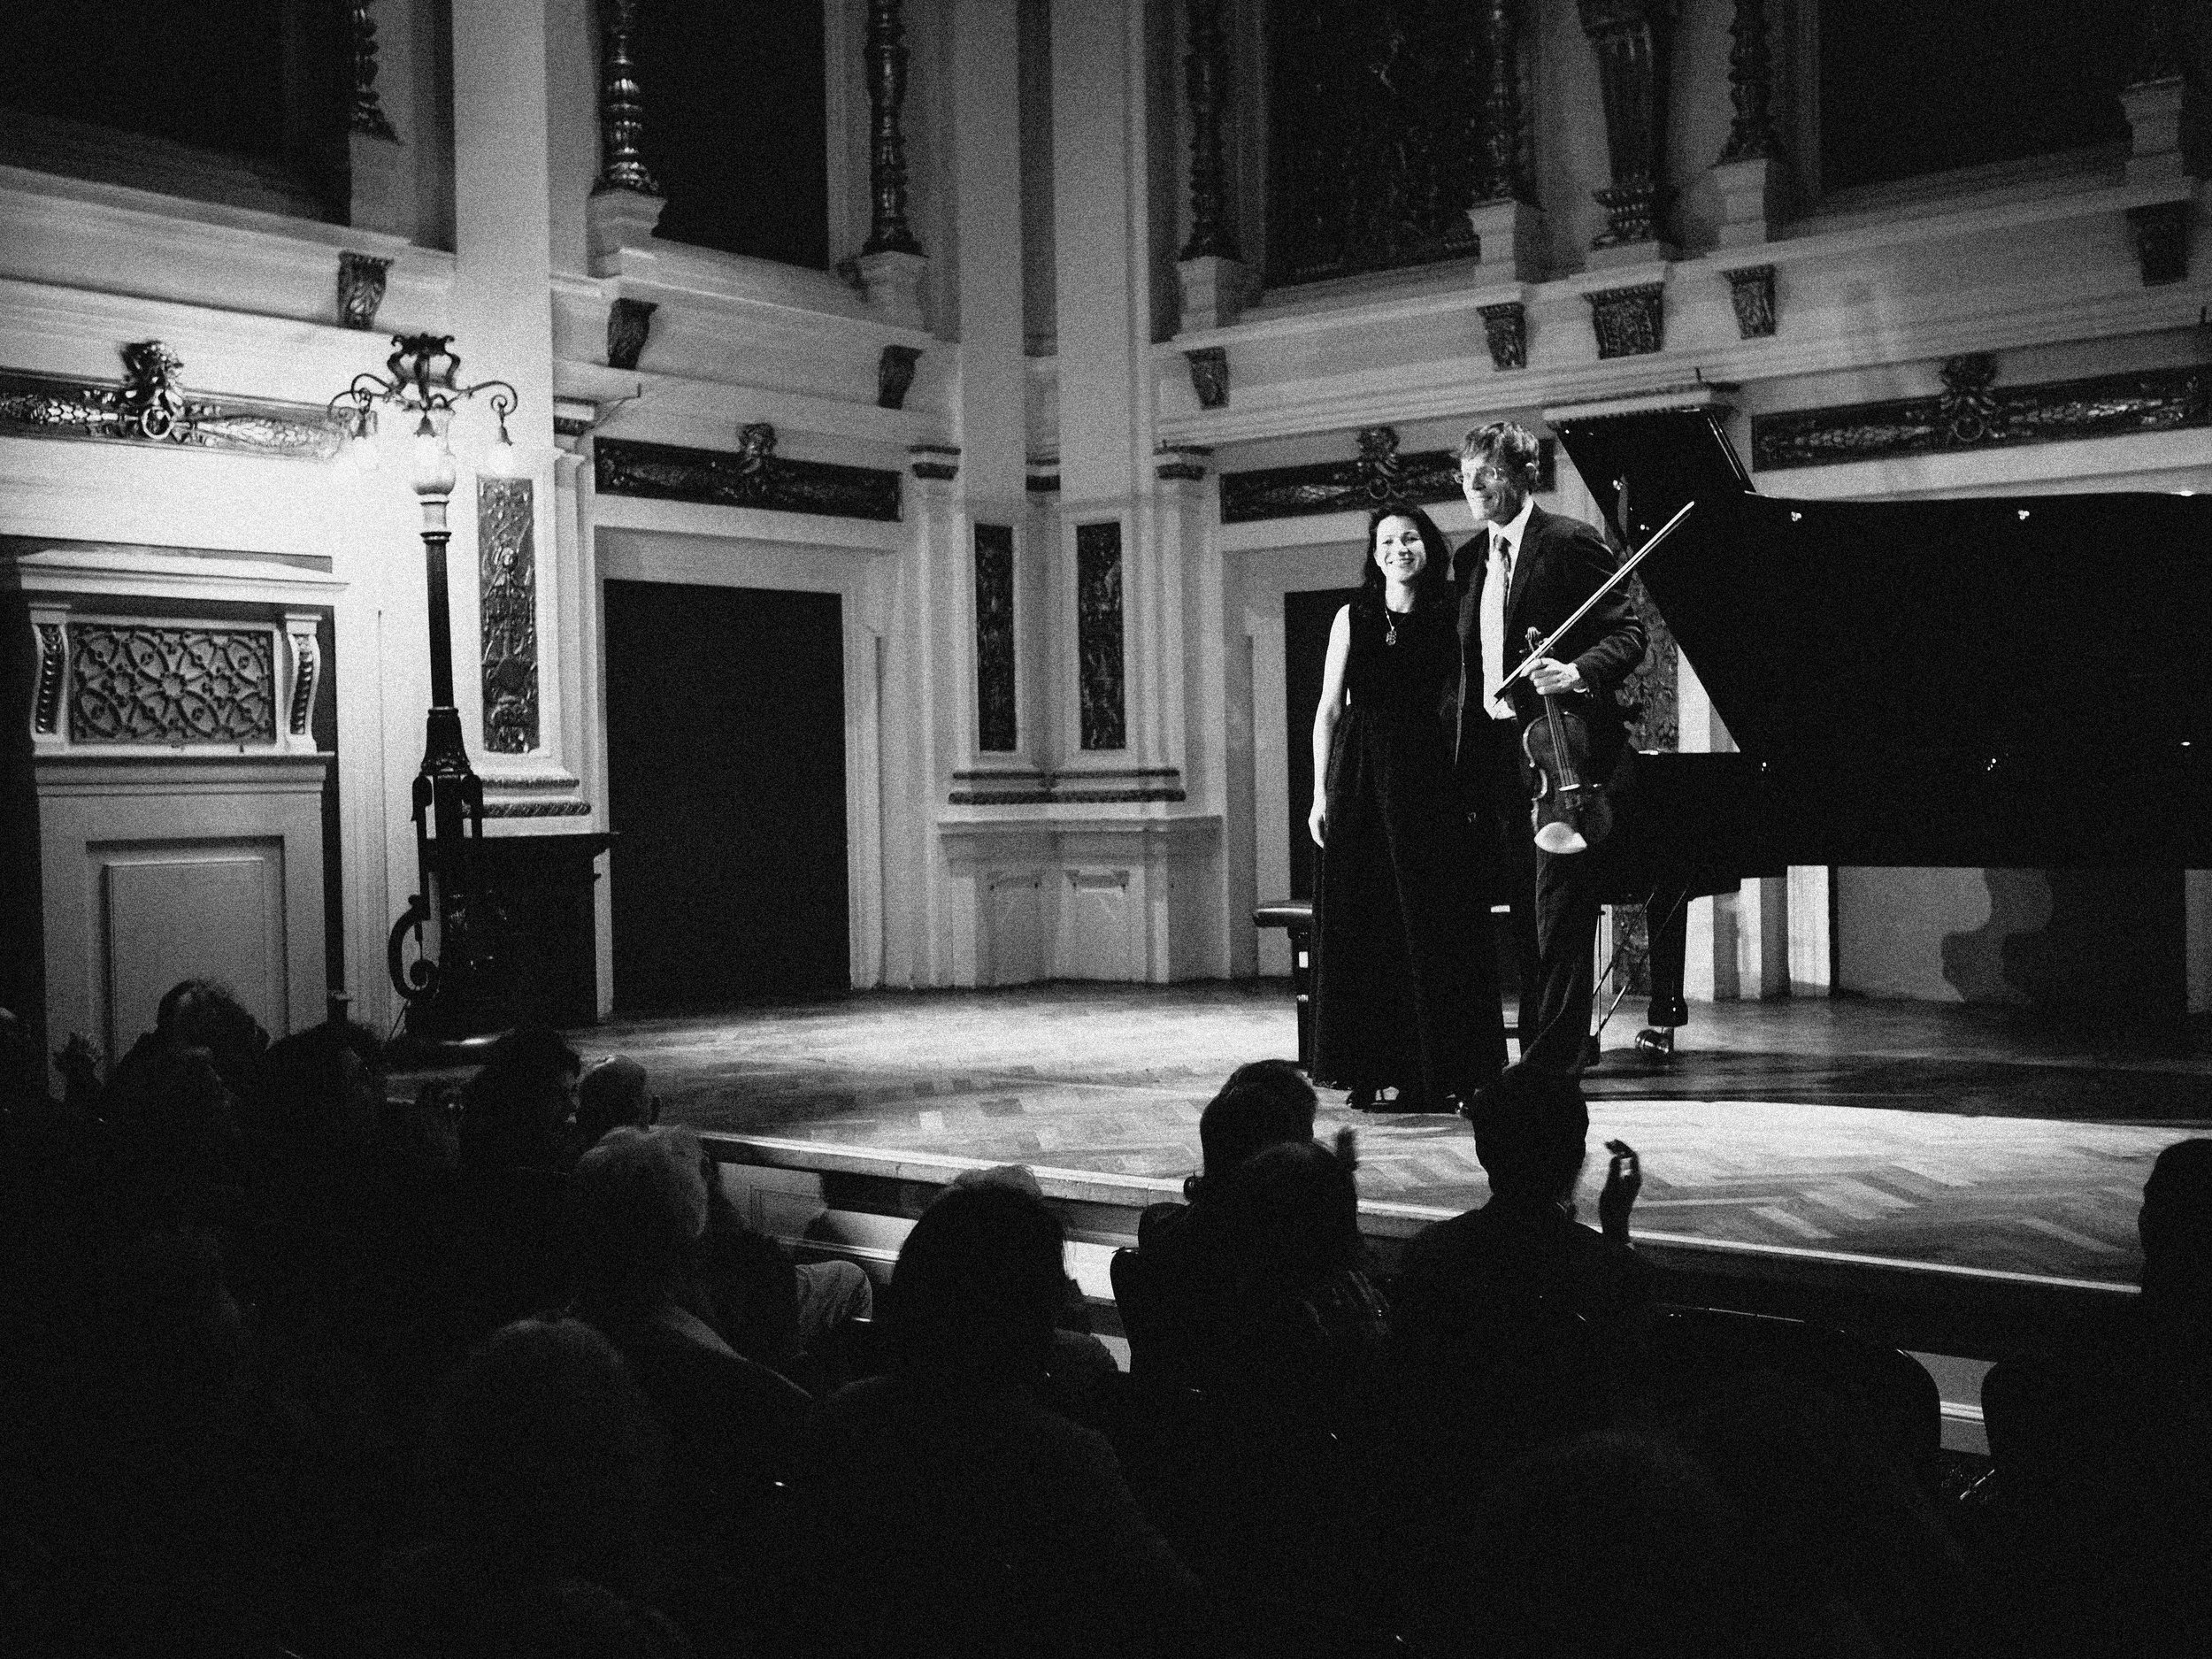 Ehrbar Hall / April 29, 2017 / Chamber Music Recital with Volkhard Steude